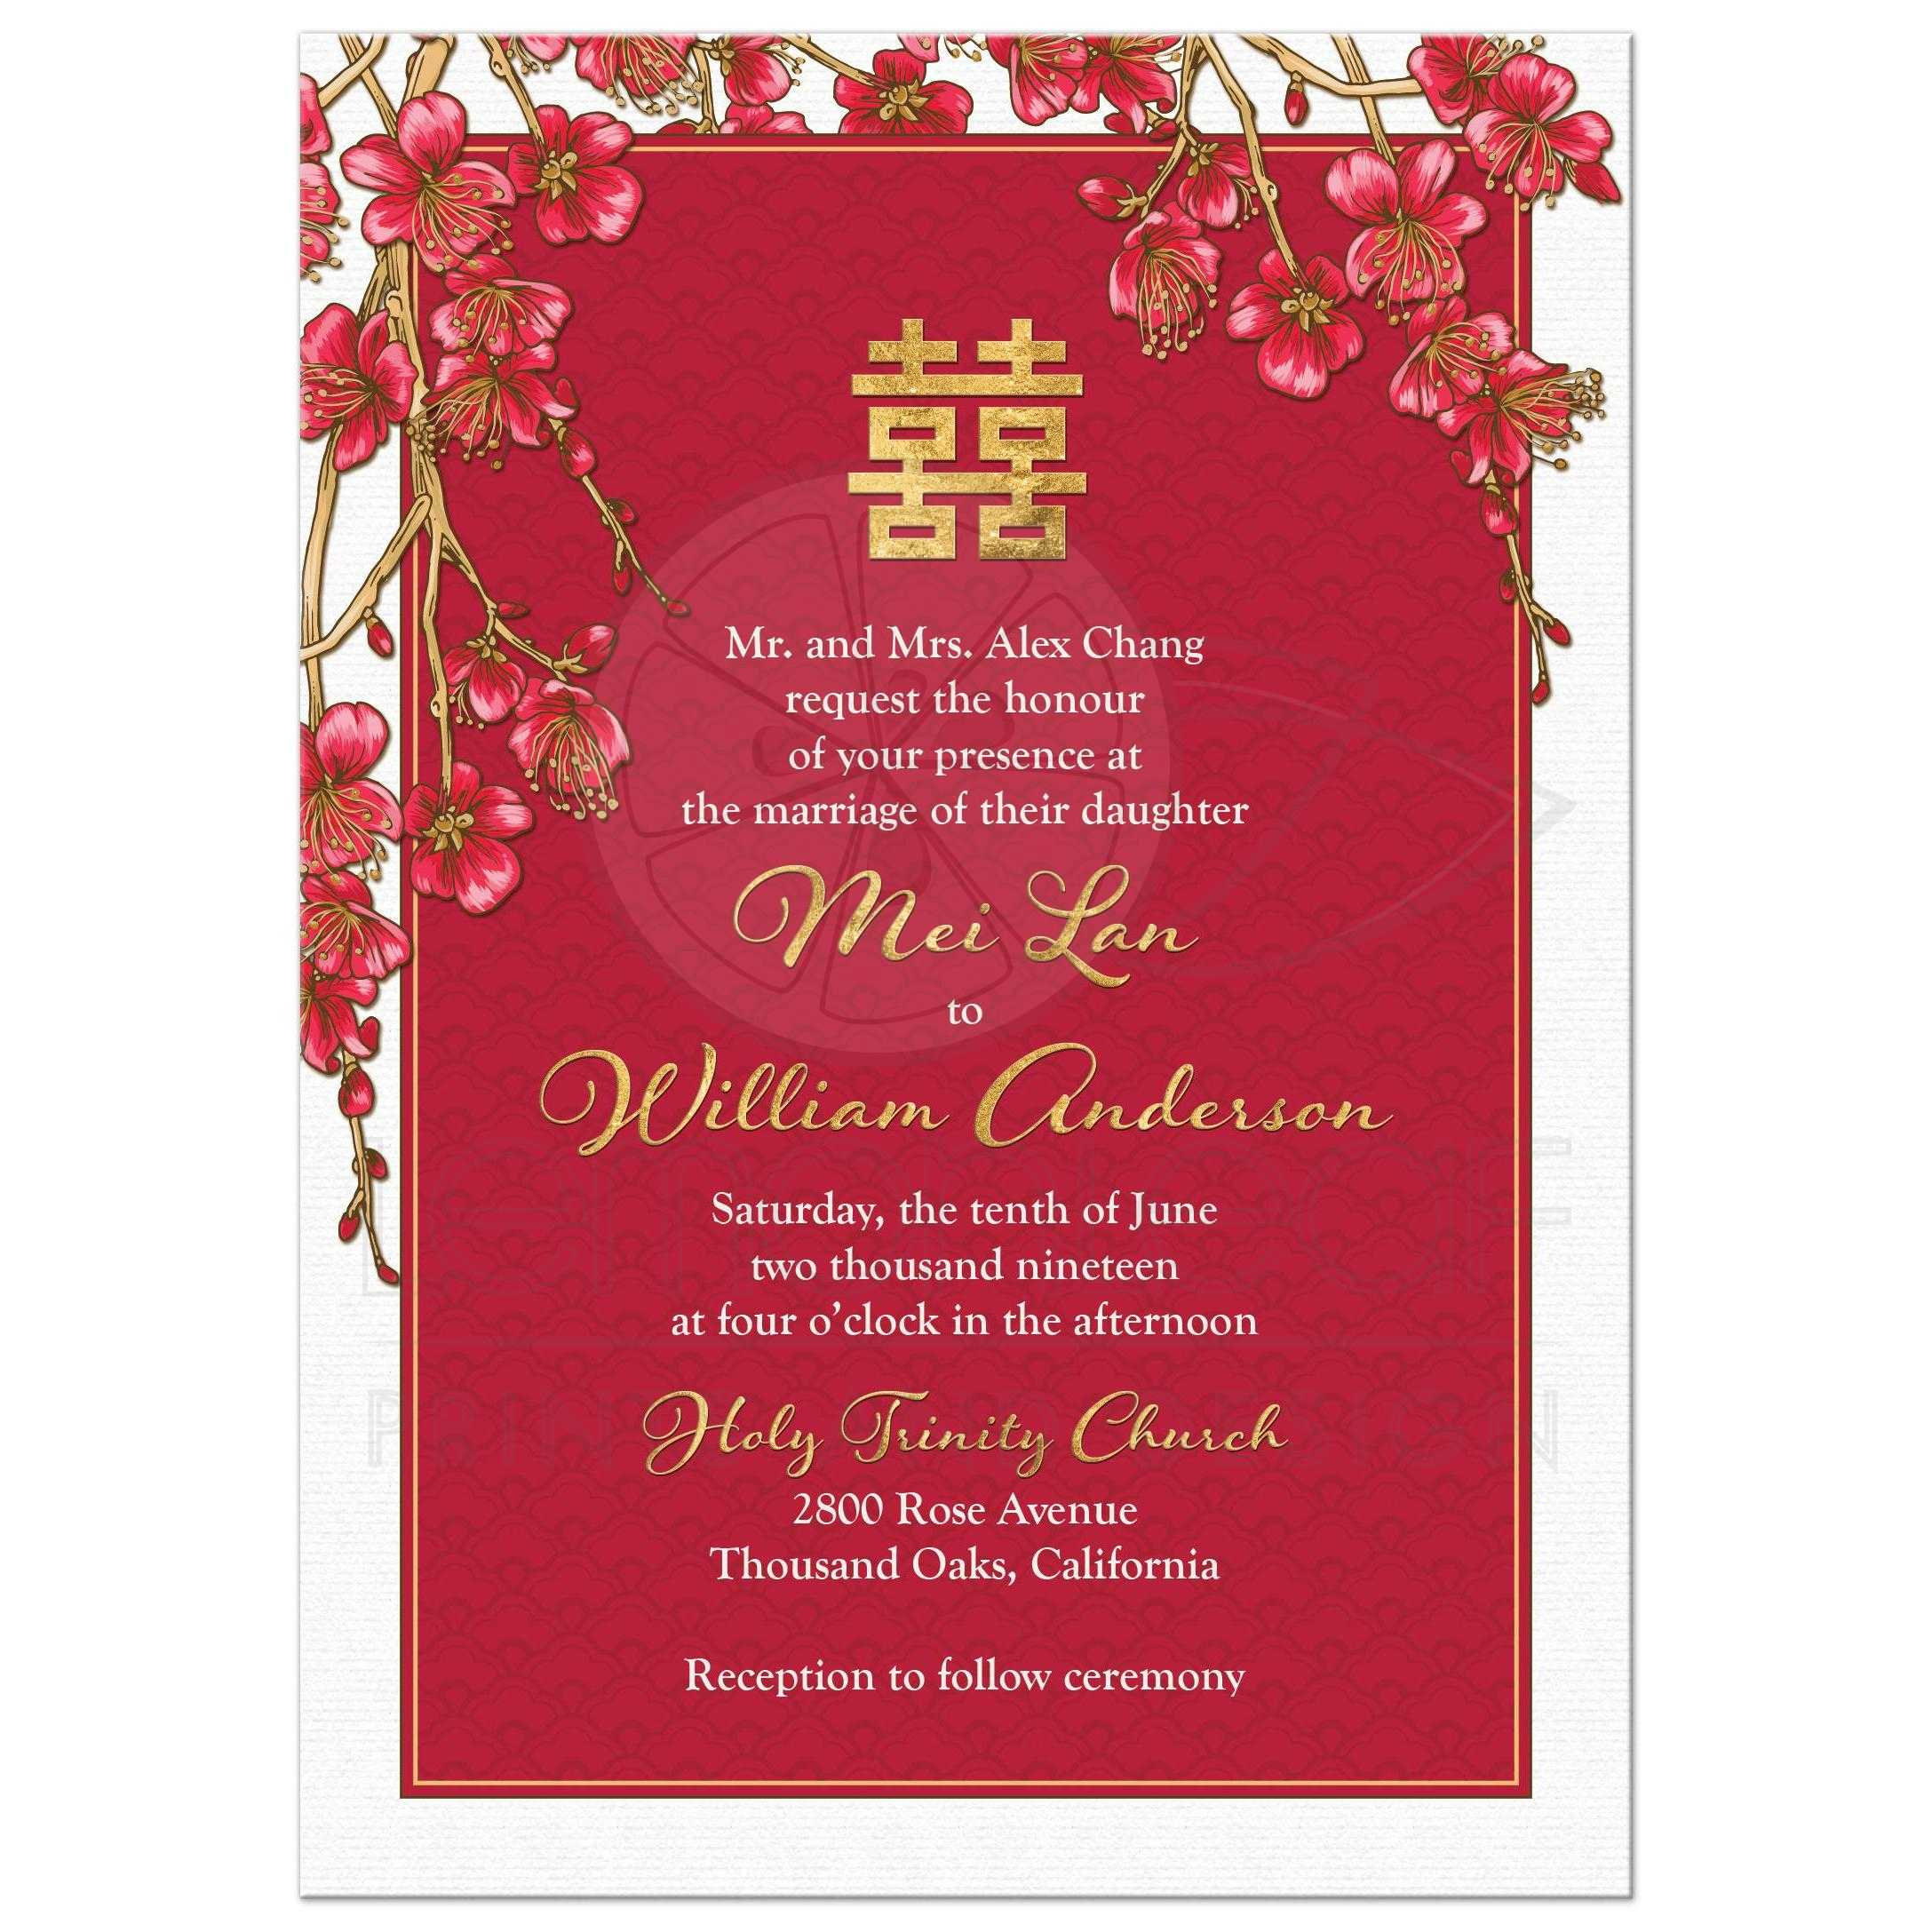 Enchanting Wedding Invitations Sri Lanka Crest Resume Ideas